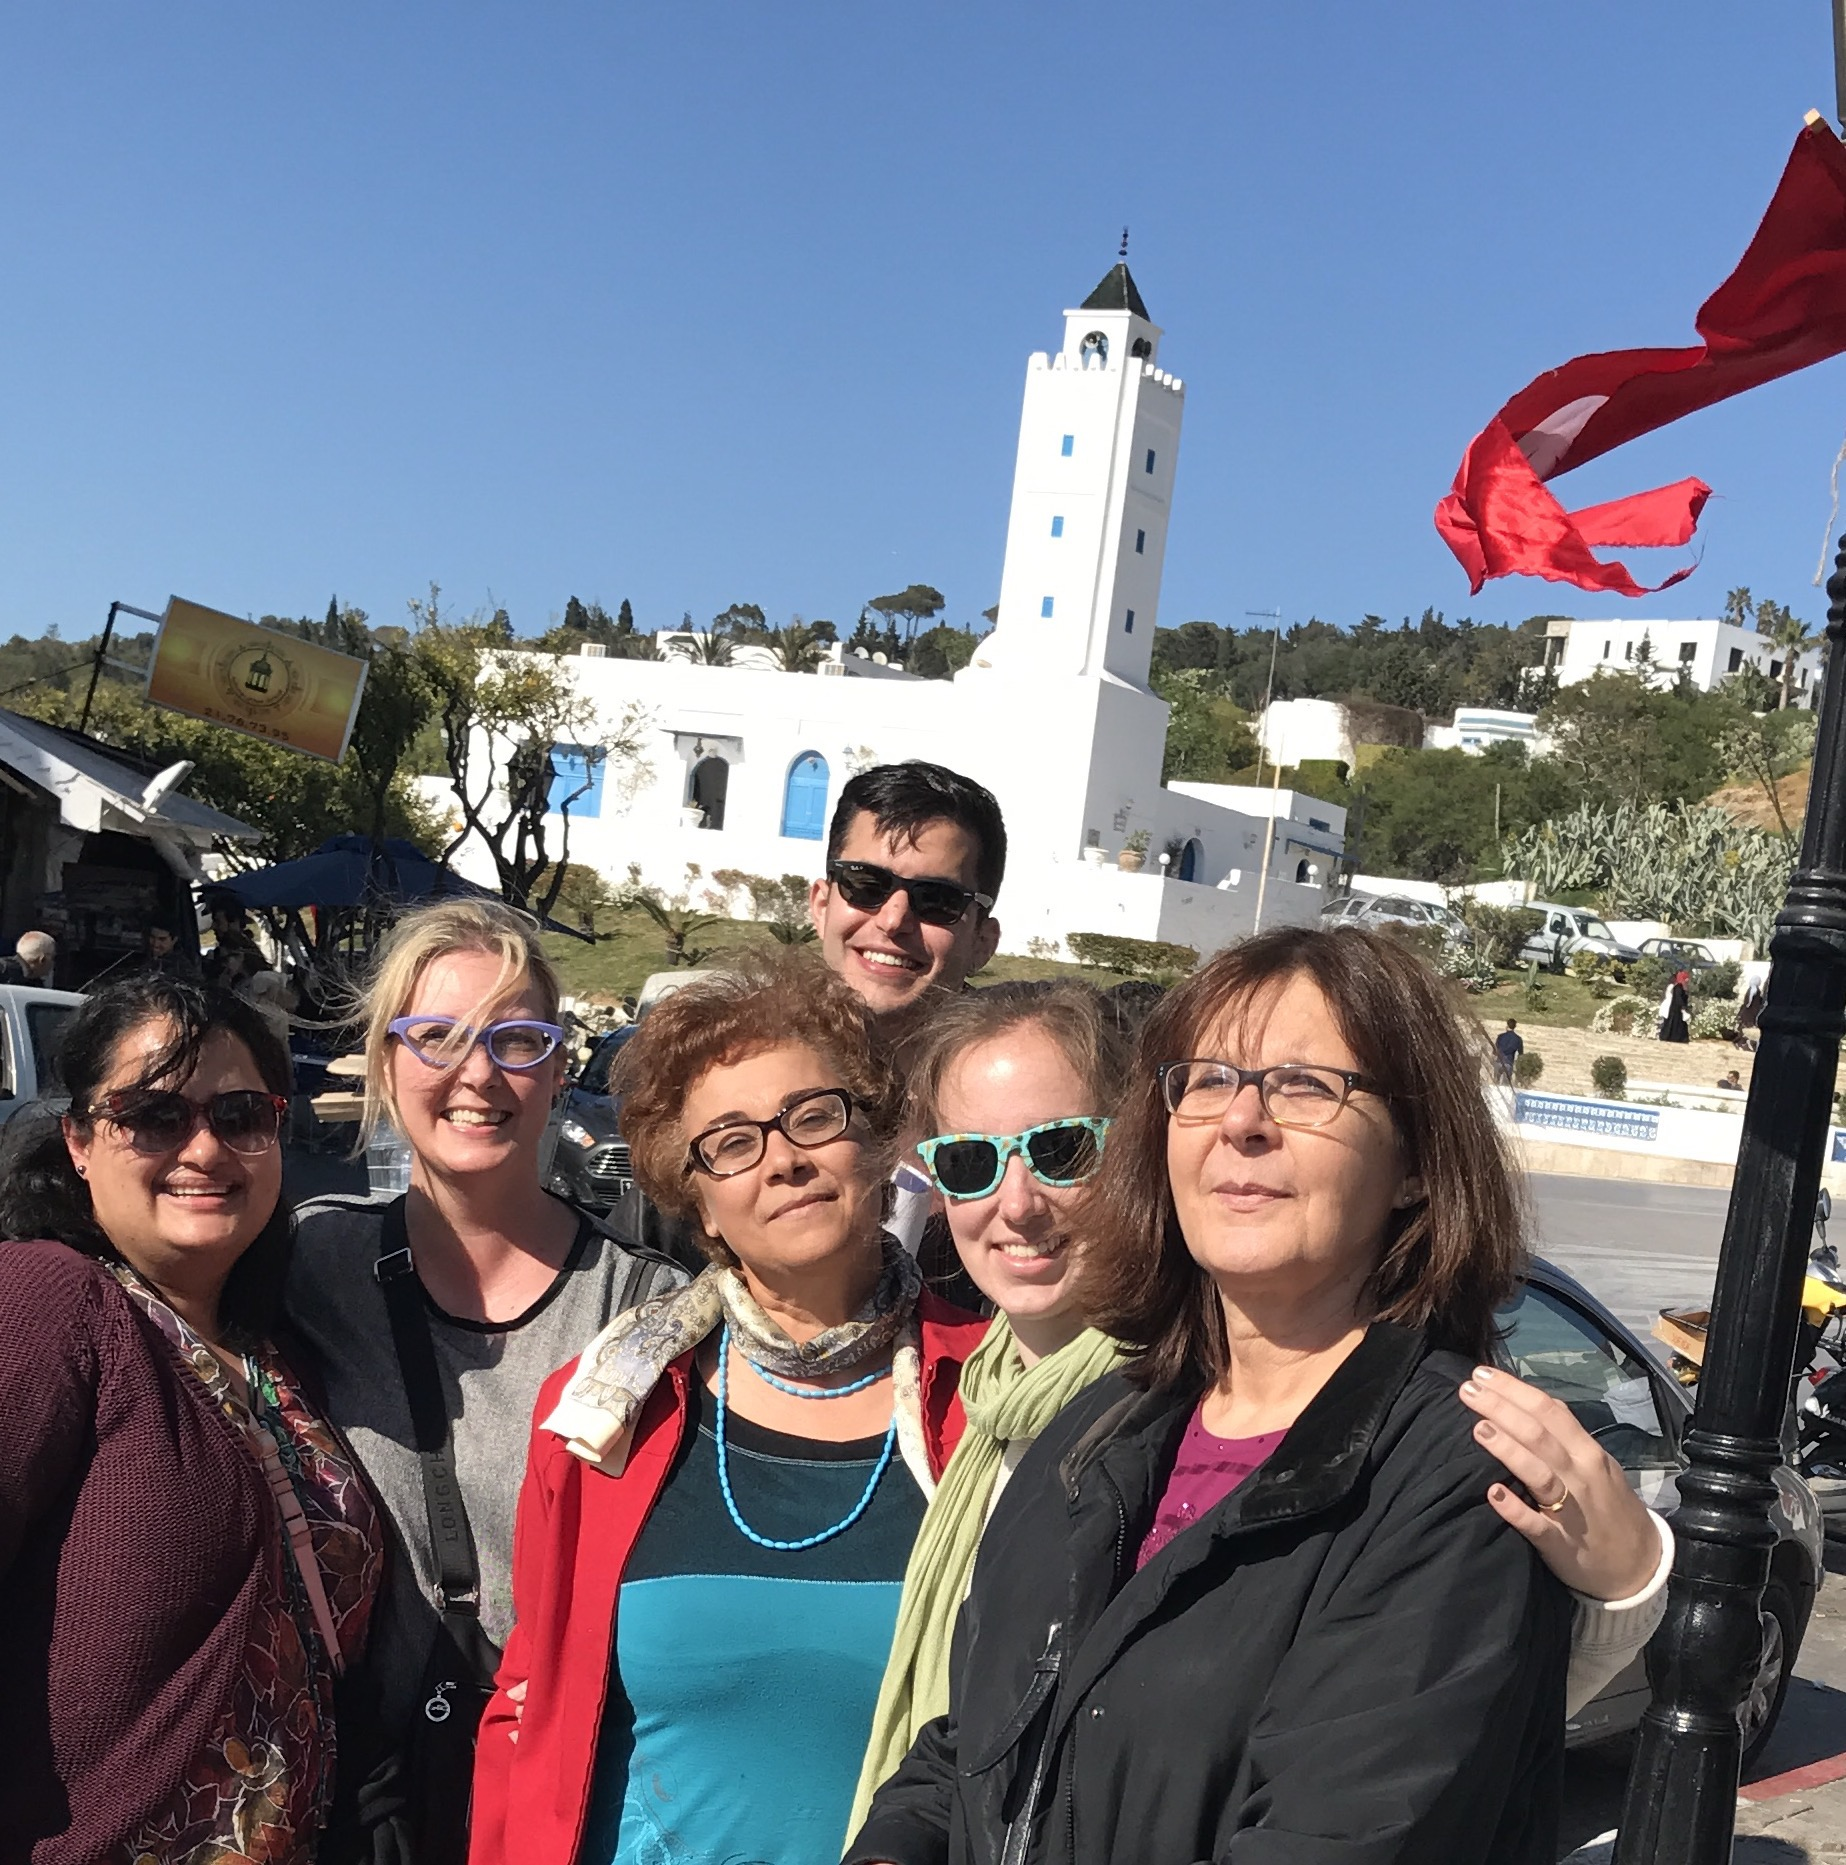 Our US and Tunisian team met up for lunch in Sidi Bou Said